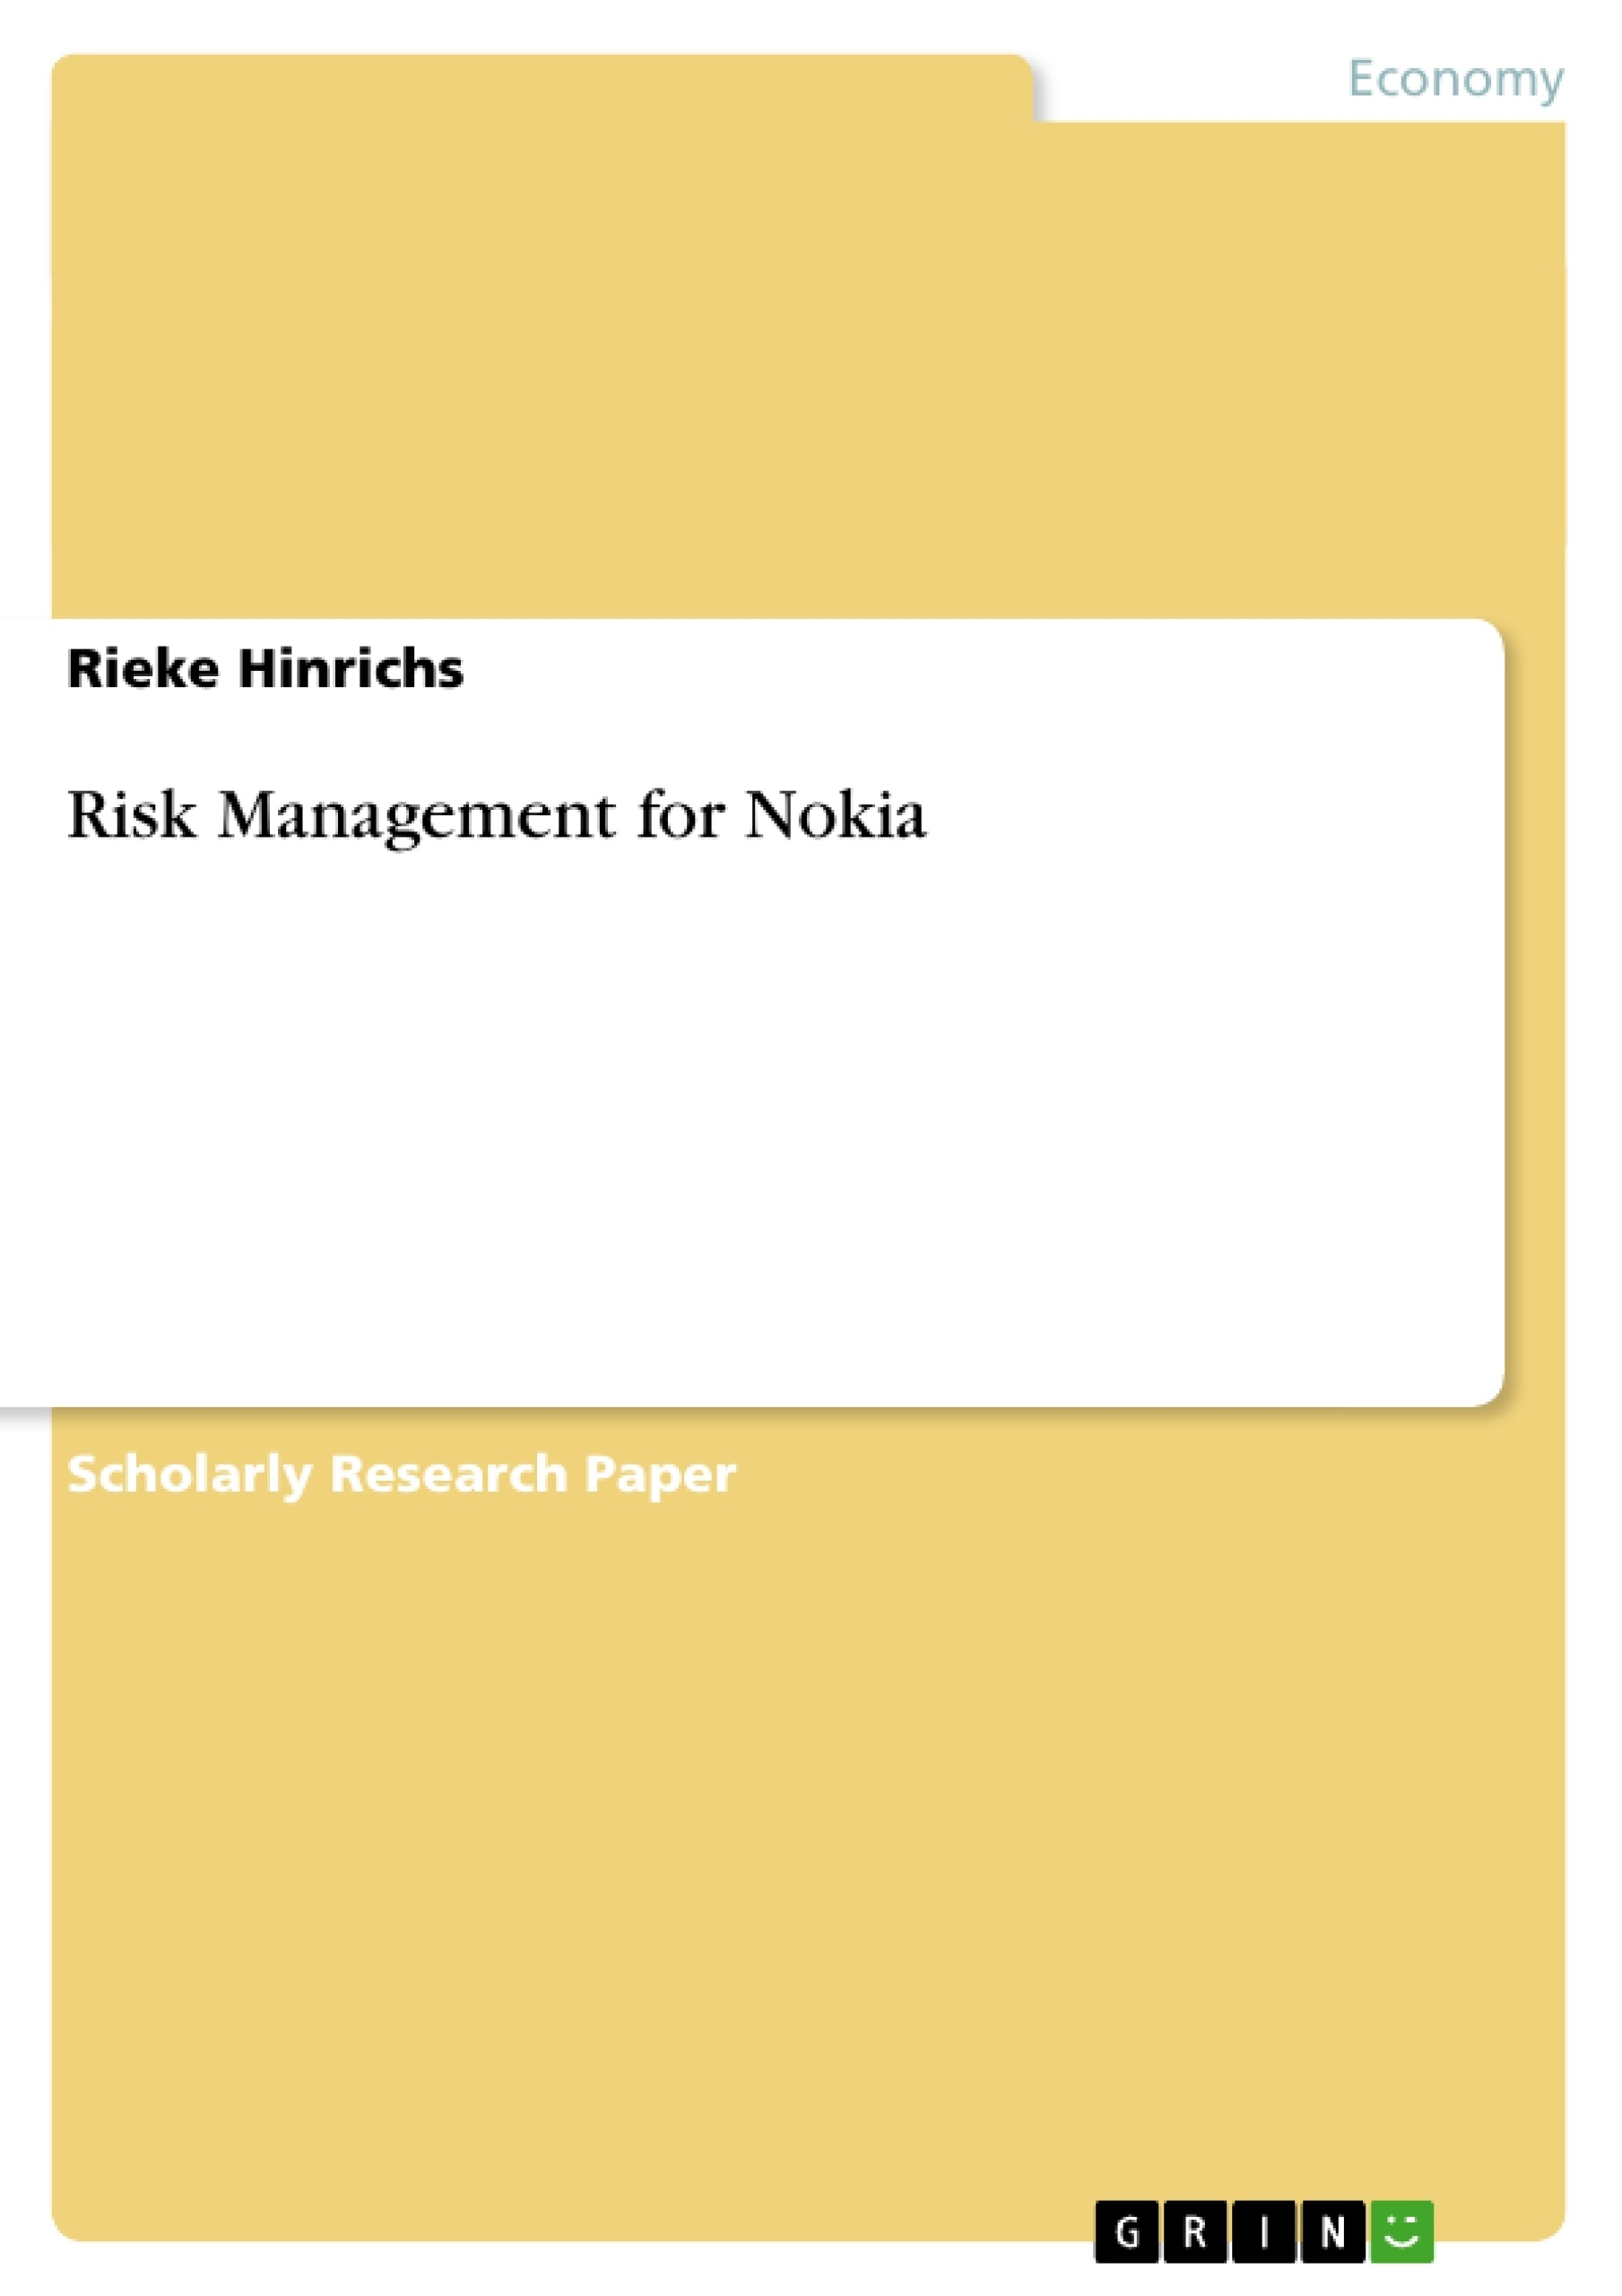 risk management for nokia publish your master s thesis risk management for nokia publish your master s thesis bachelor s thesis essay or term paper